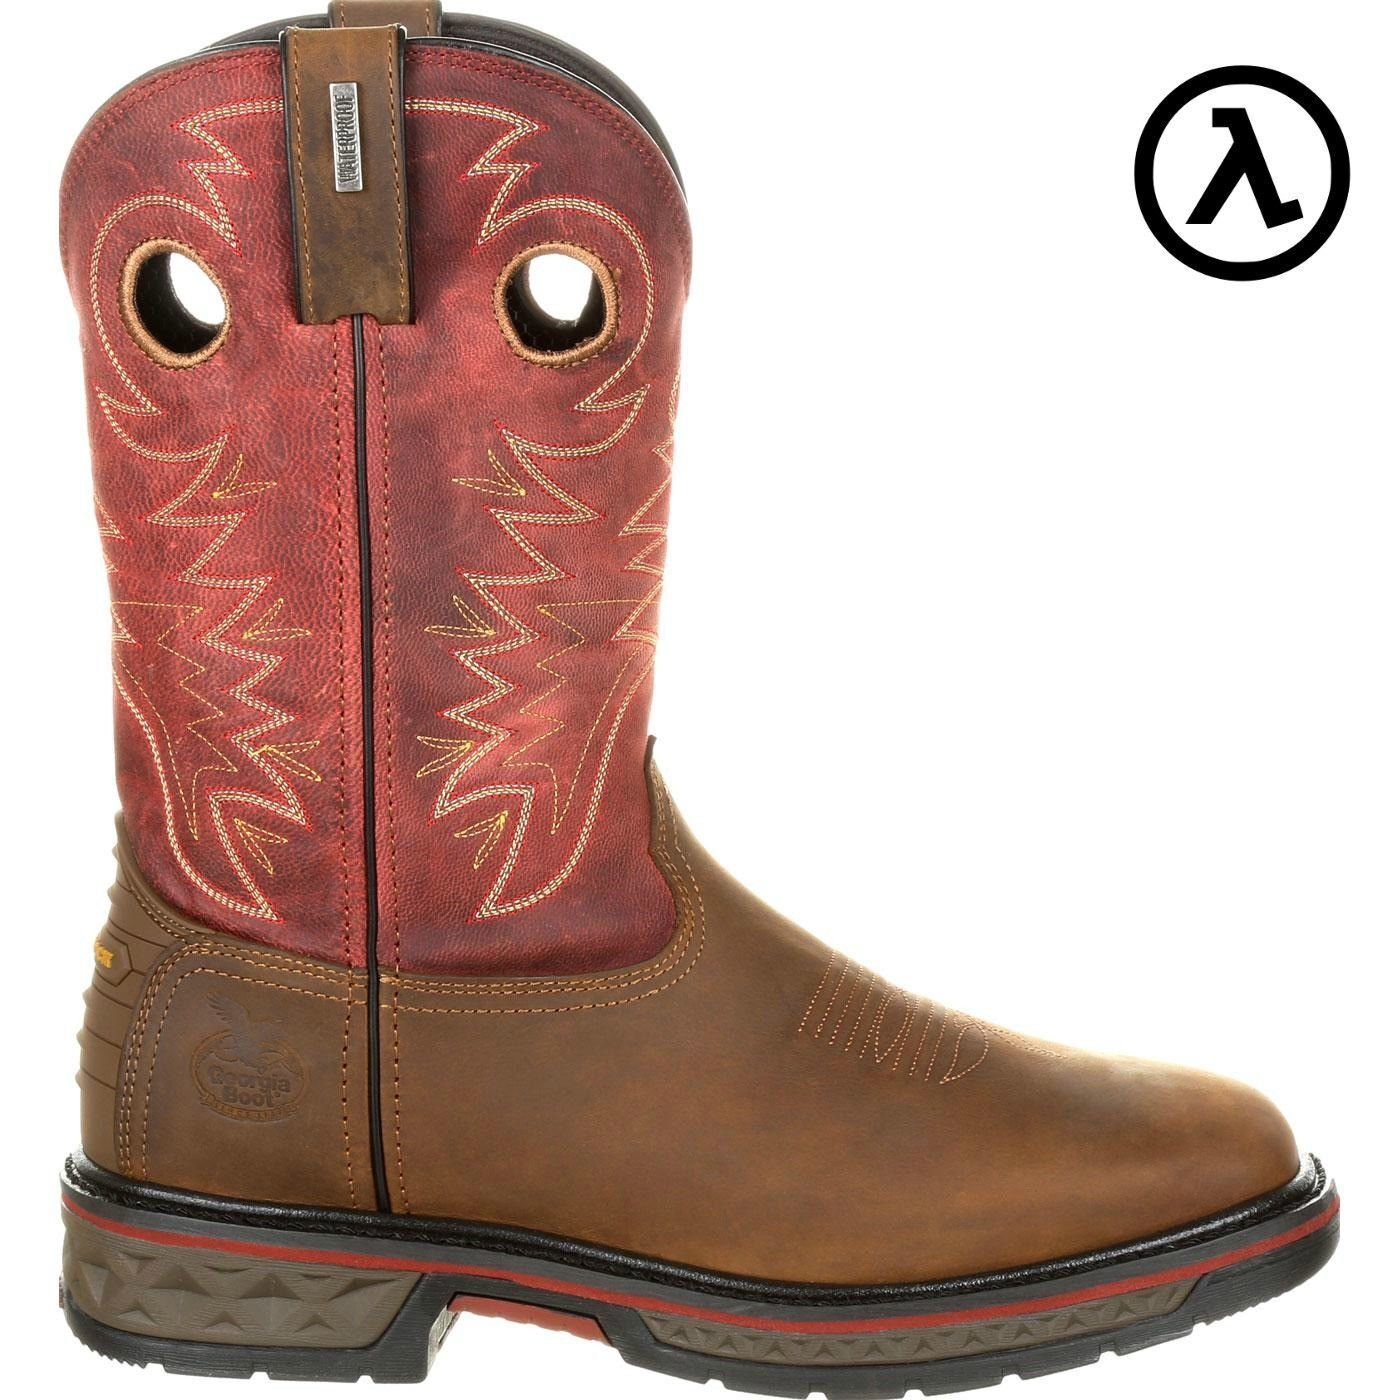 GEORGIA BOOT ALLOY TOE CARBO-TEC WATERPROOF PULL-ON BOOTS GB00222  ALL SIZES